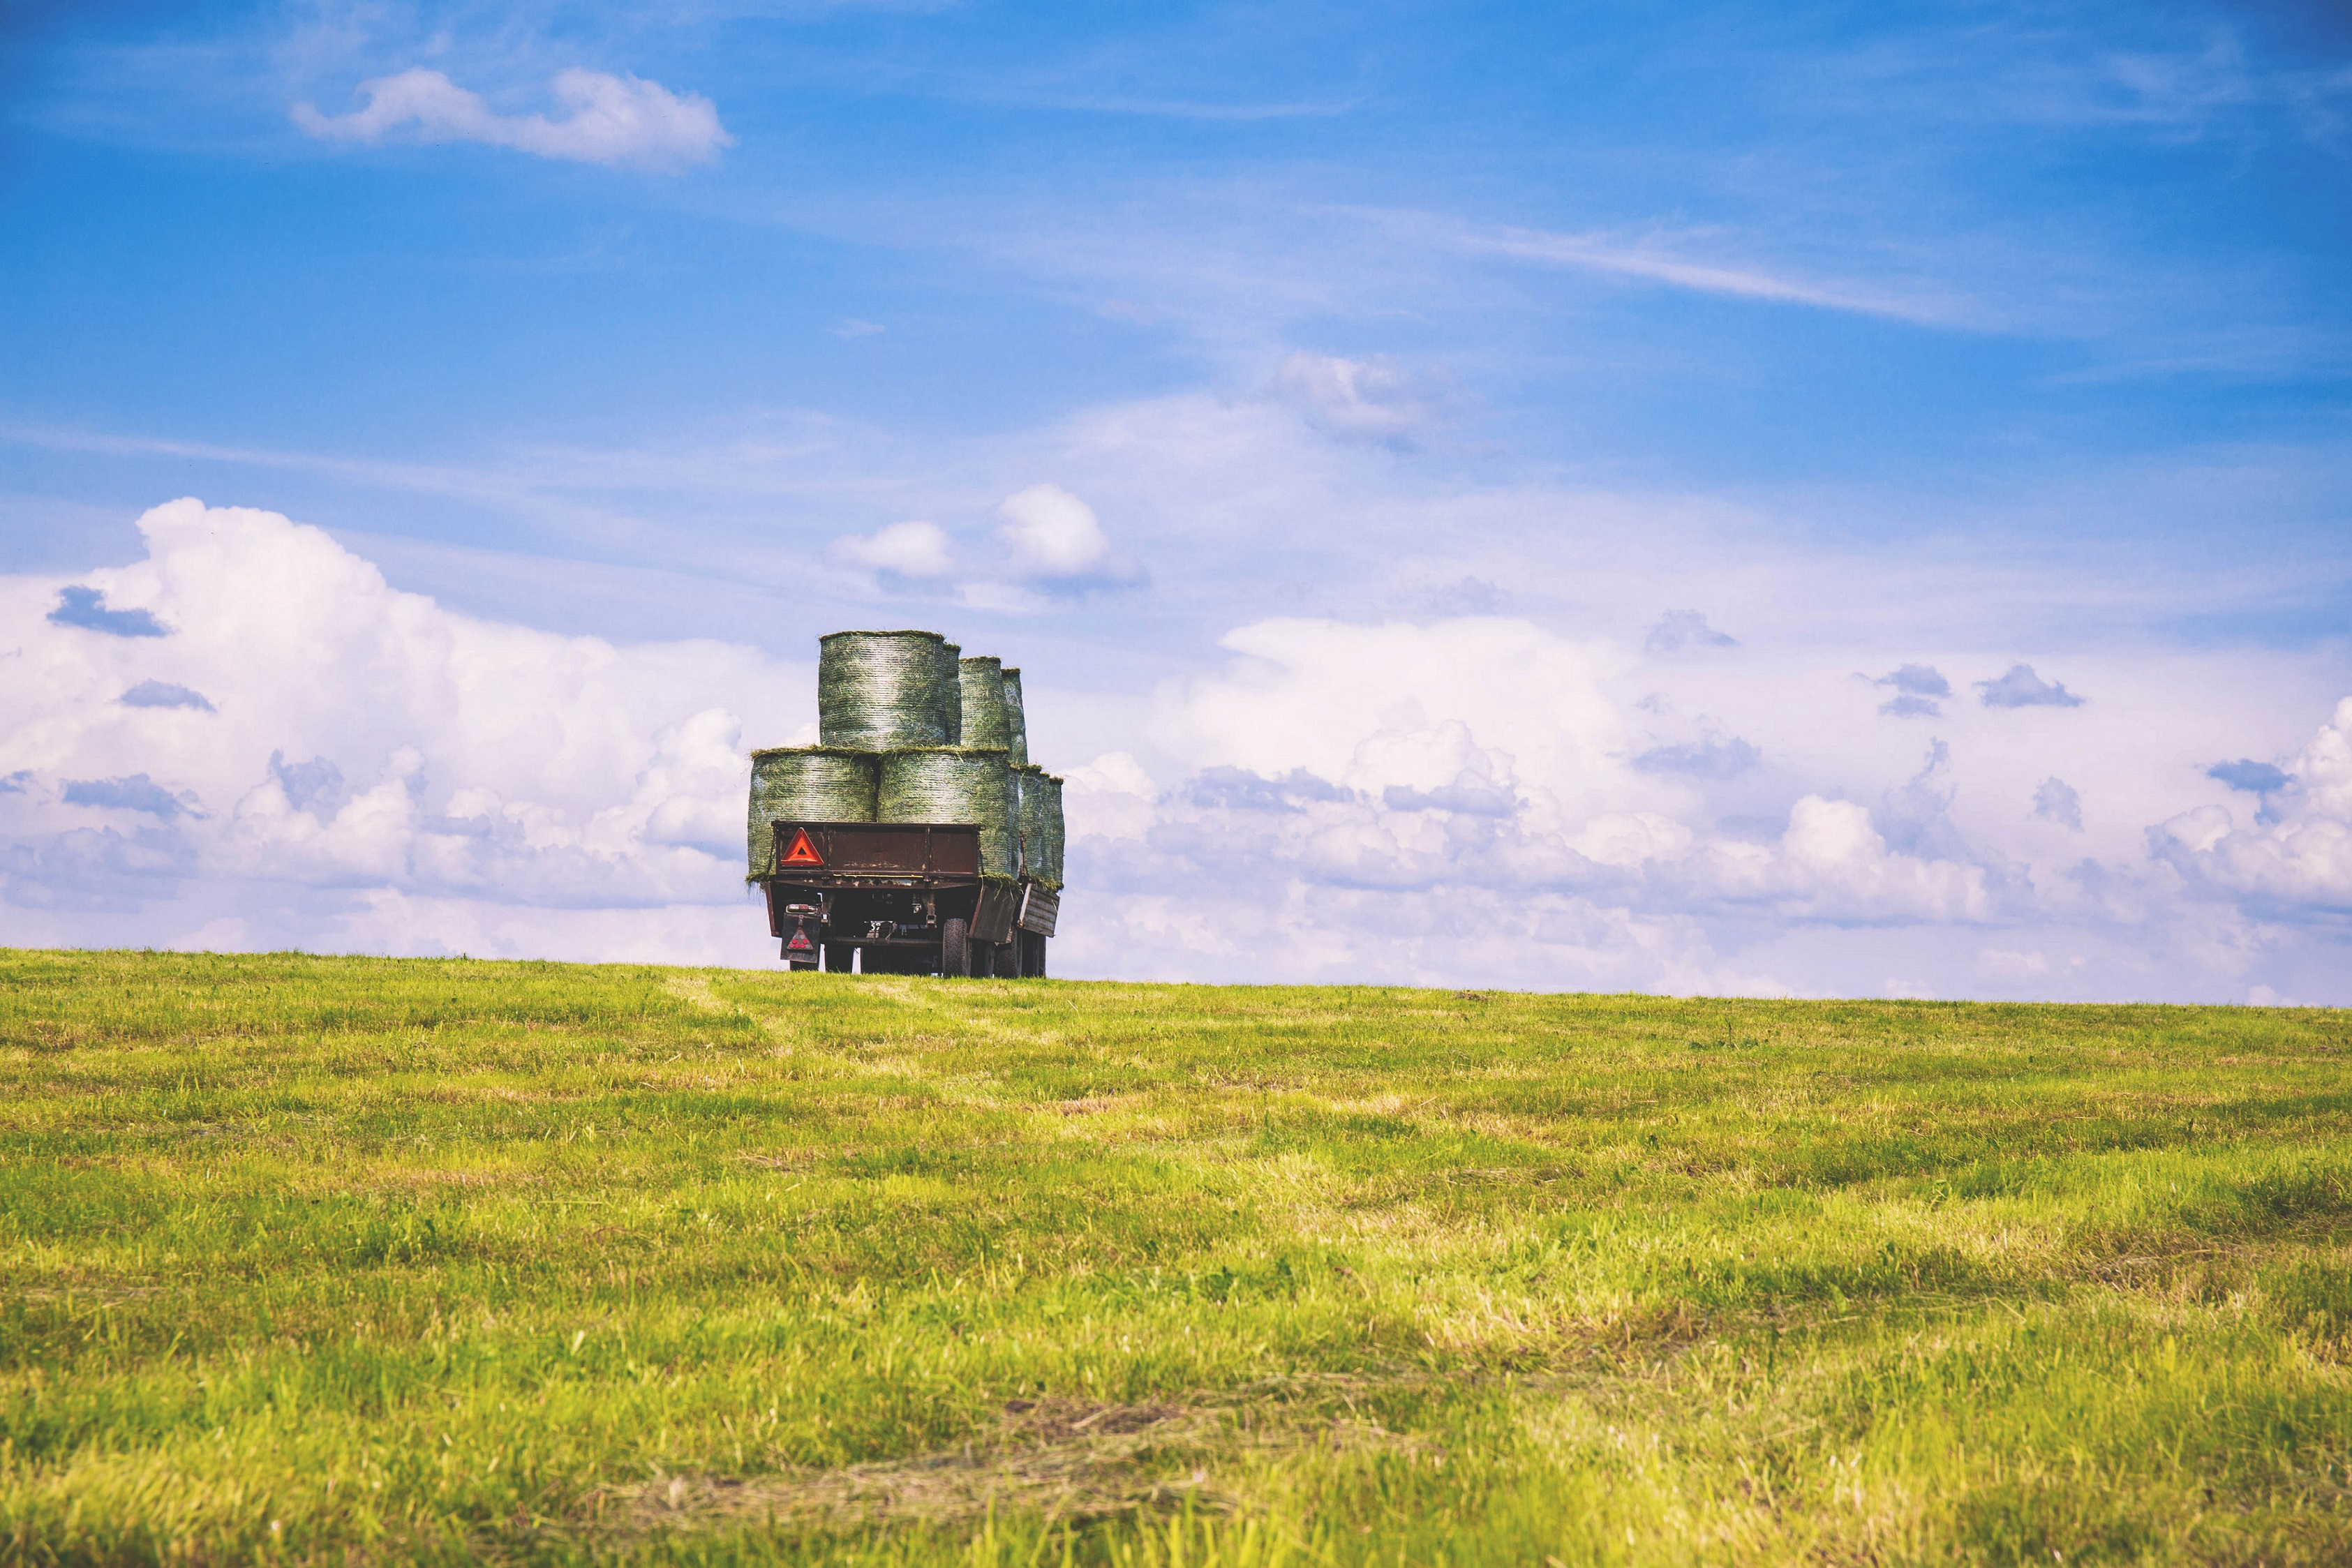 transportation in food industry On february 5, 2015, the fda published a proposed sanitary transportation rule,  which it is mandated to do under the food safety.